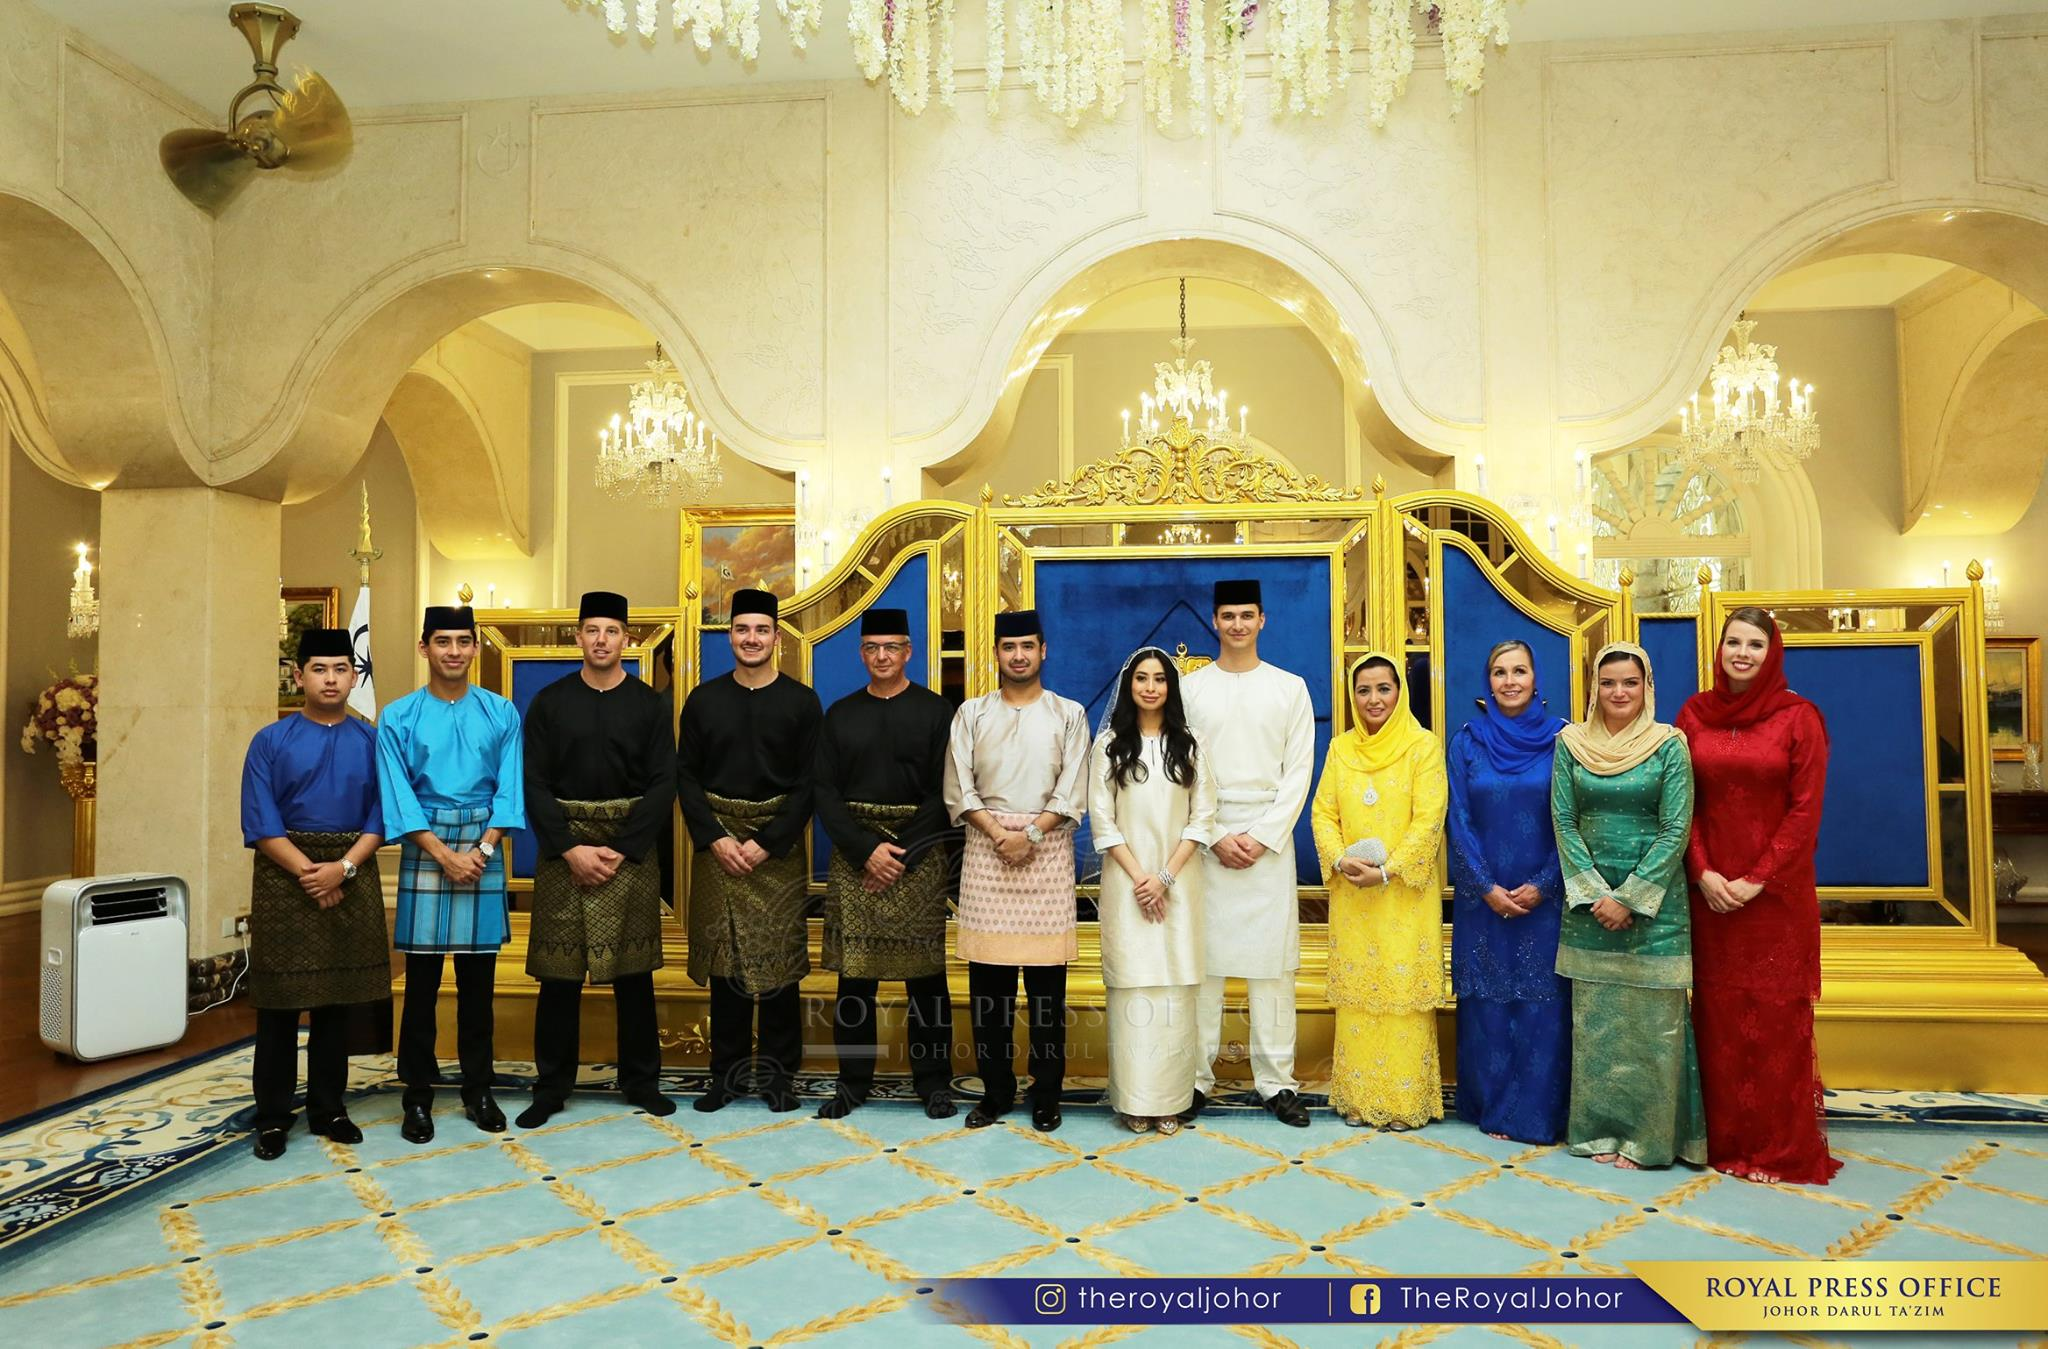 Image from The Royal Johor